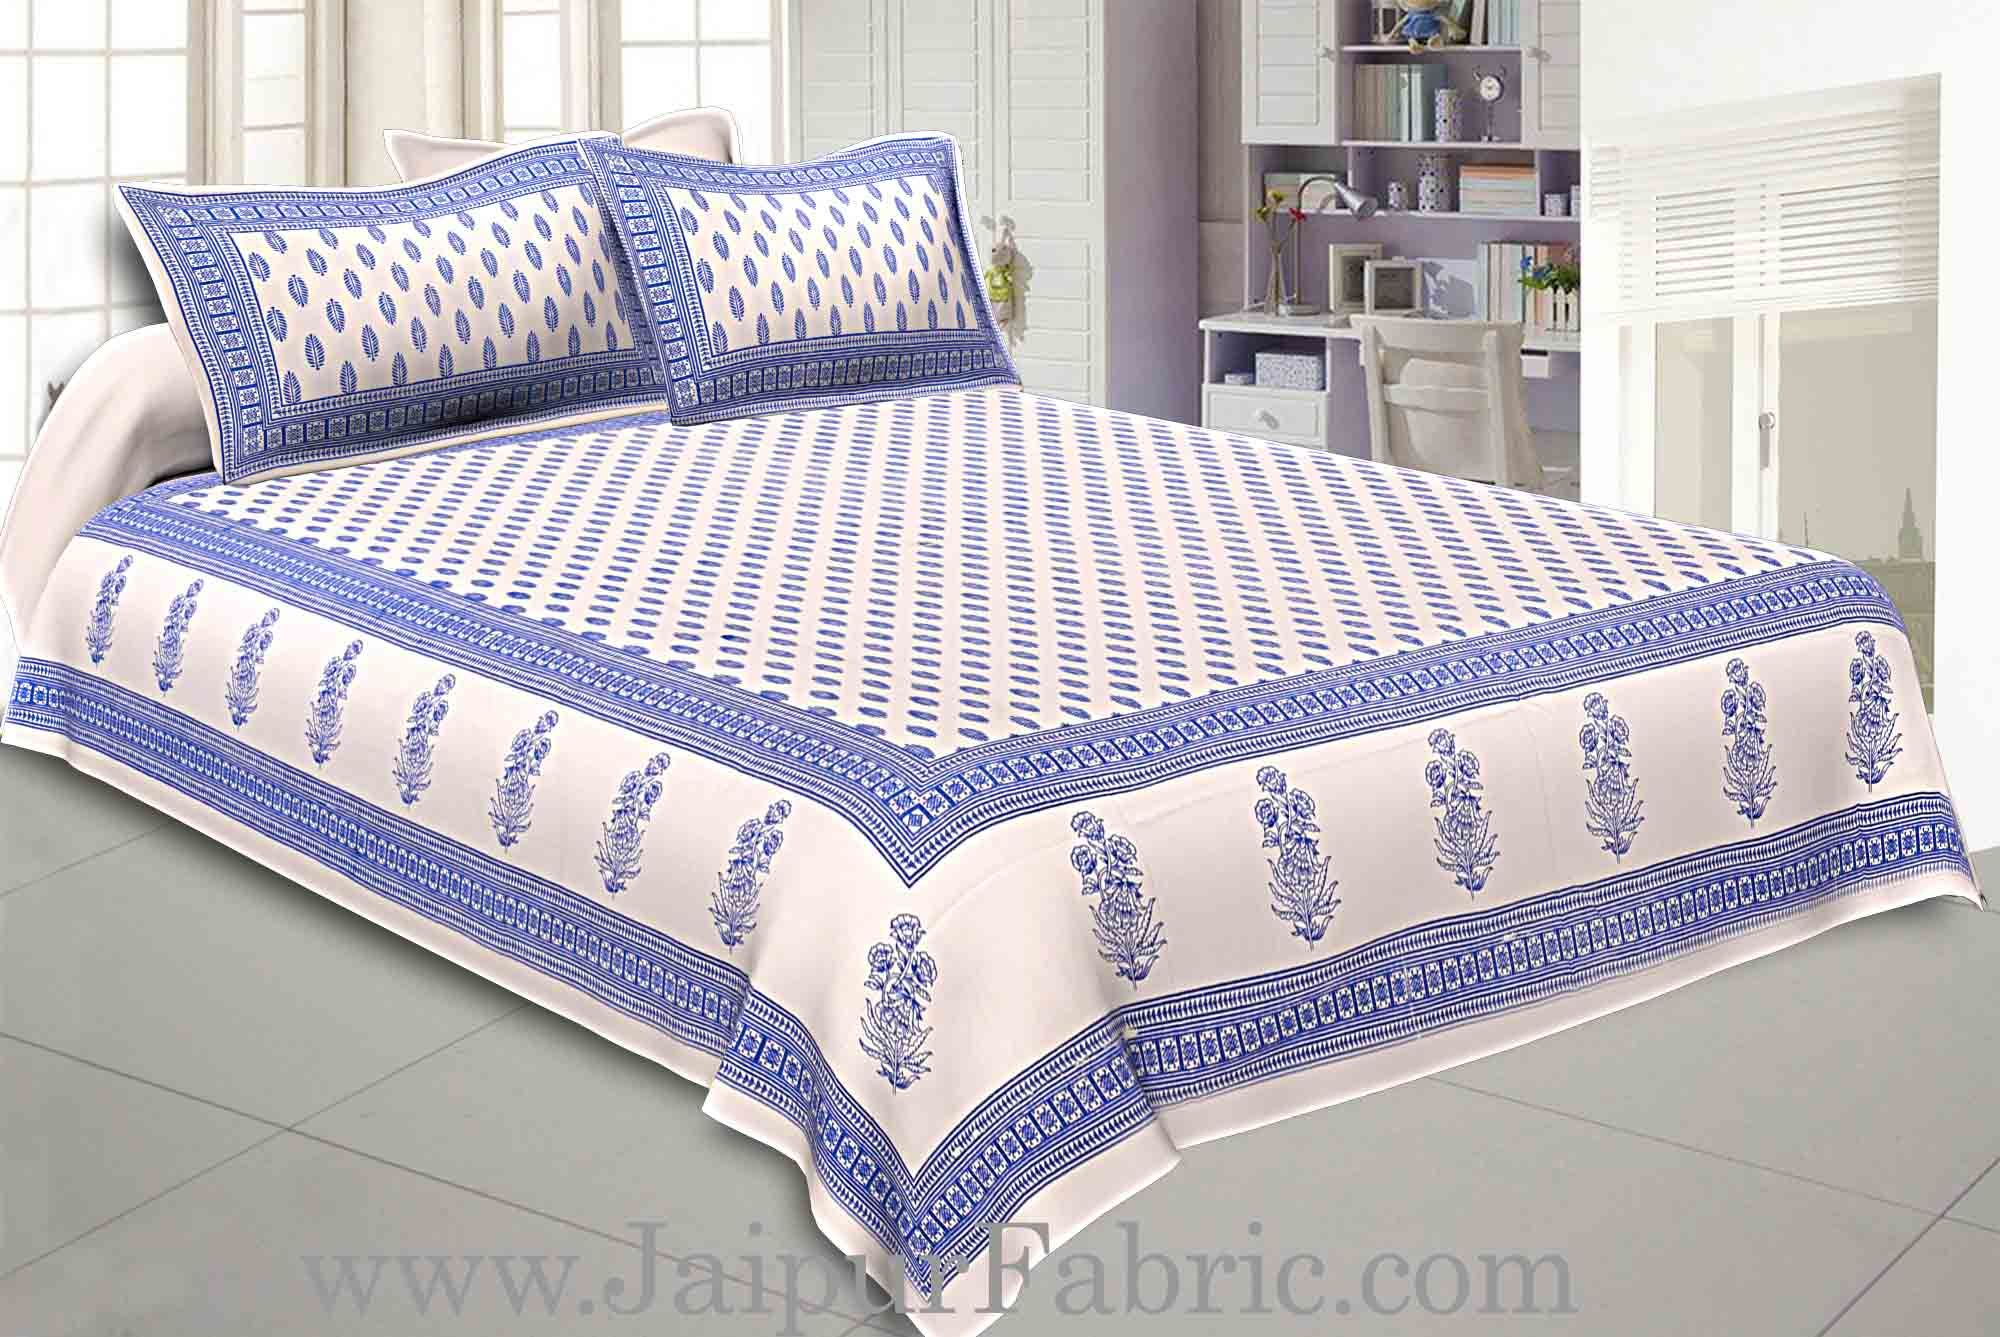 Double Bedsheet Blue Border White Base Small Leaf Print  With Two Pillow Cover